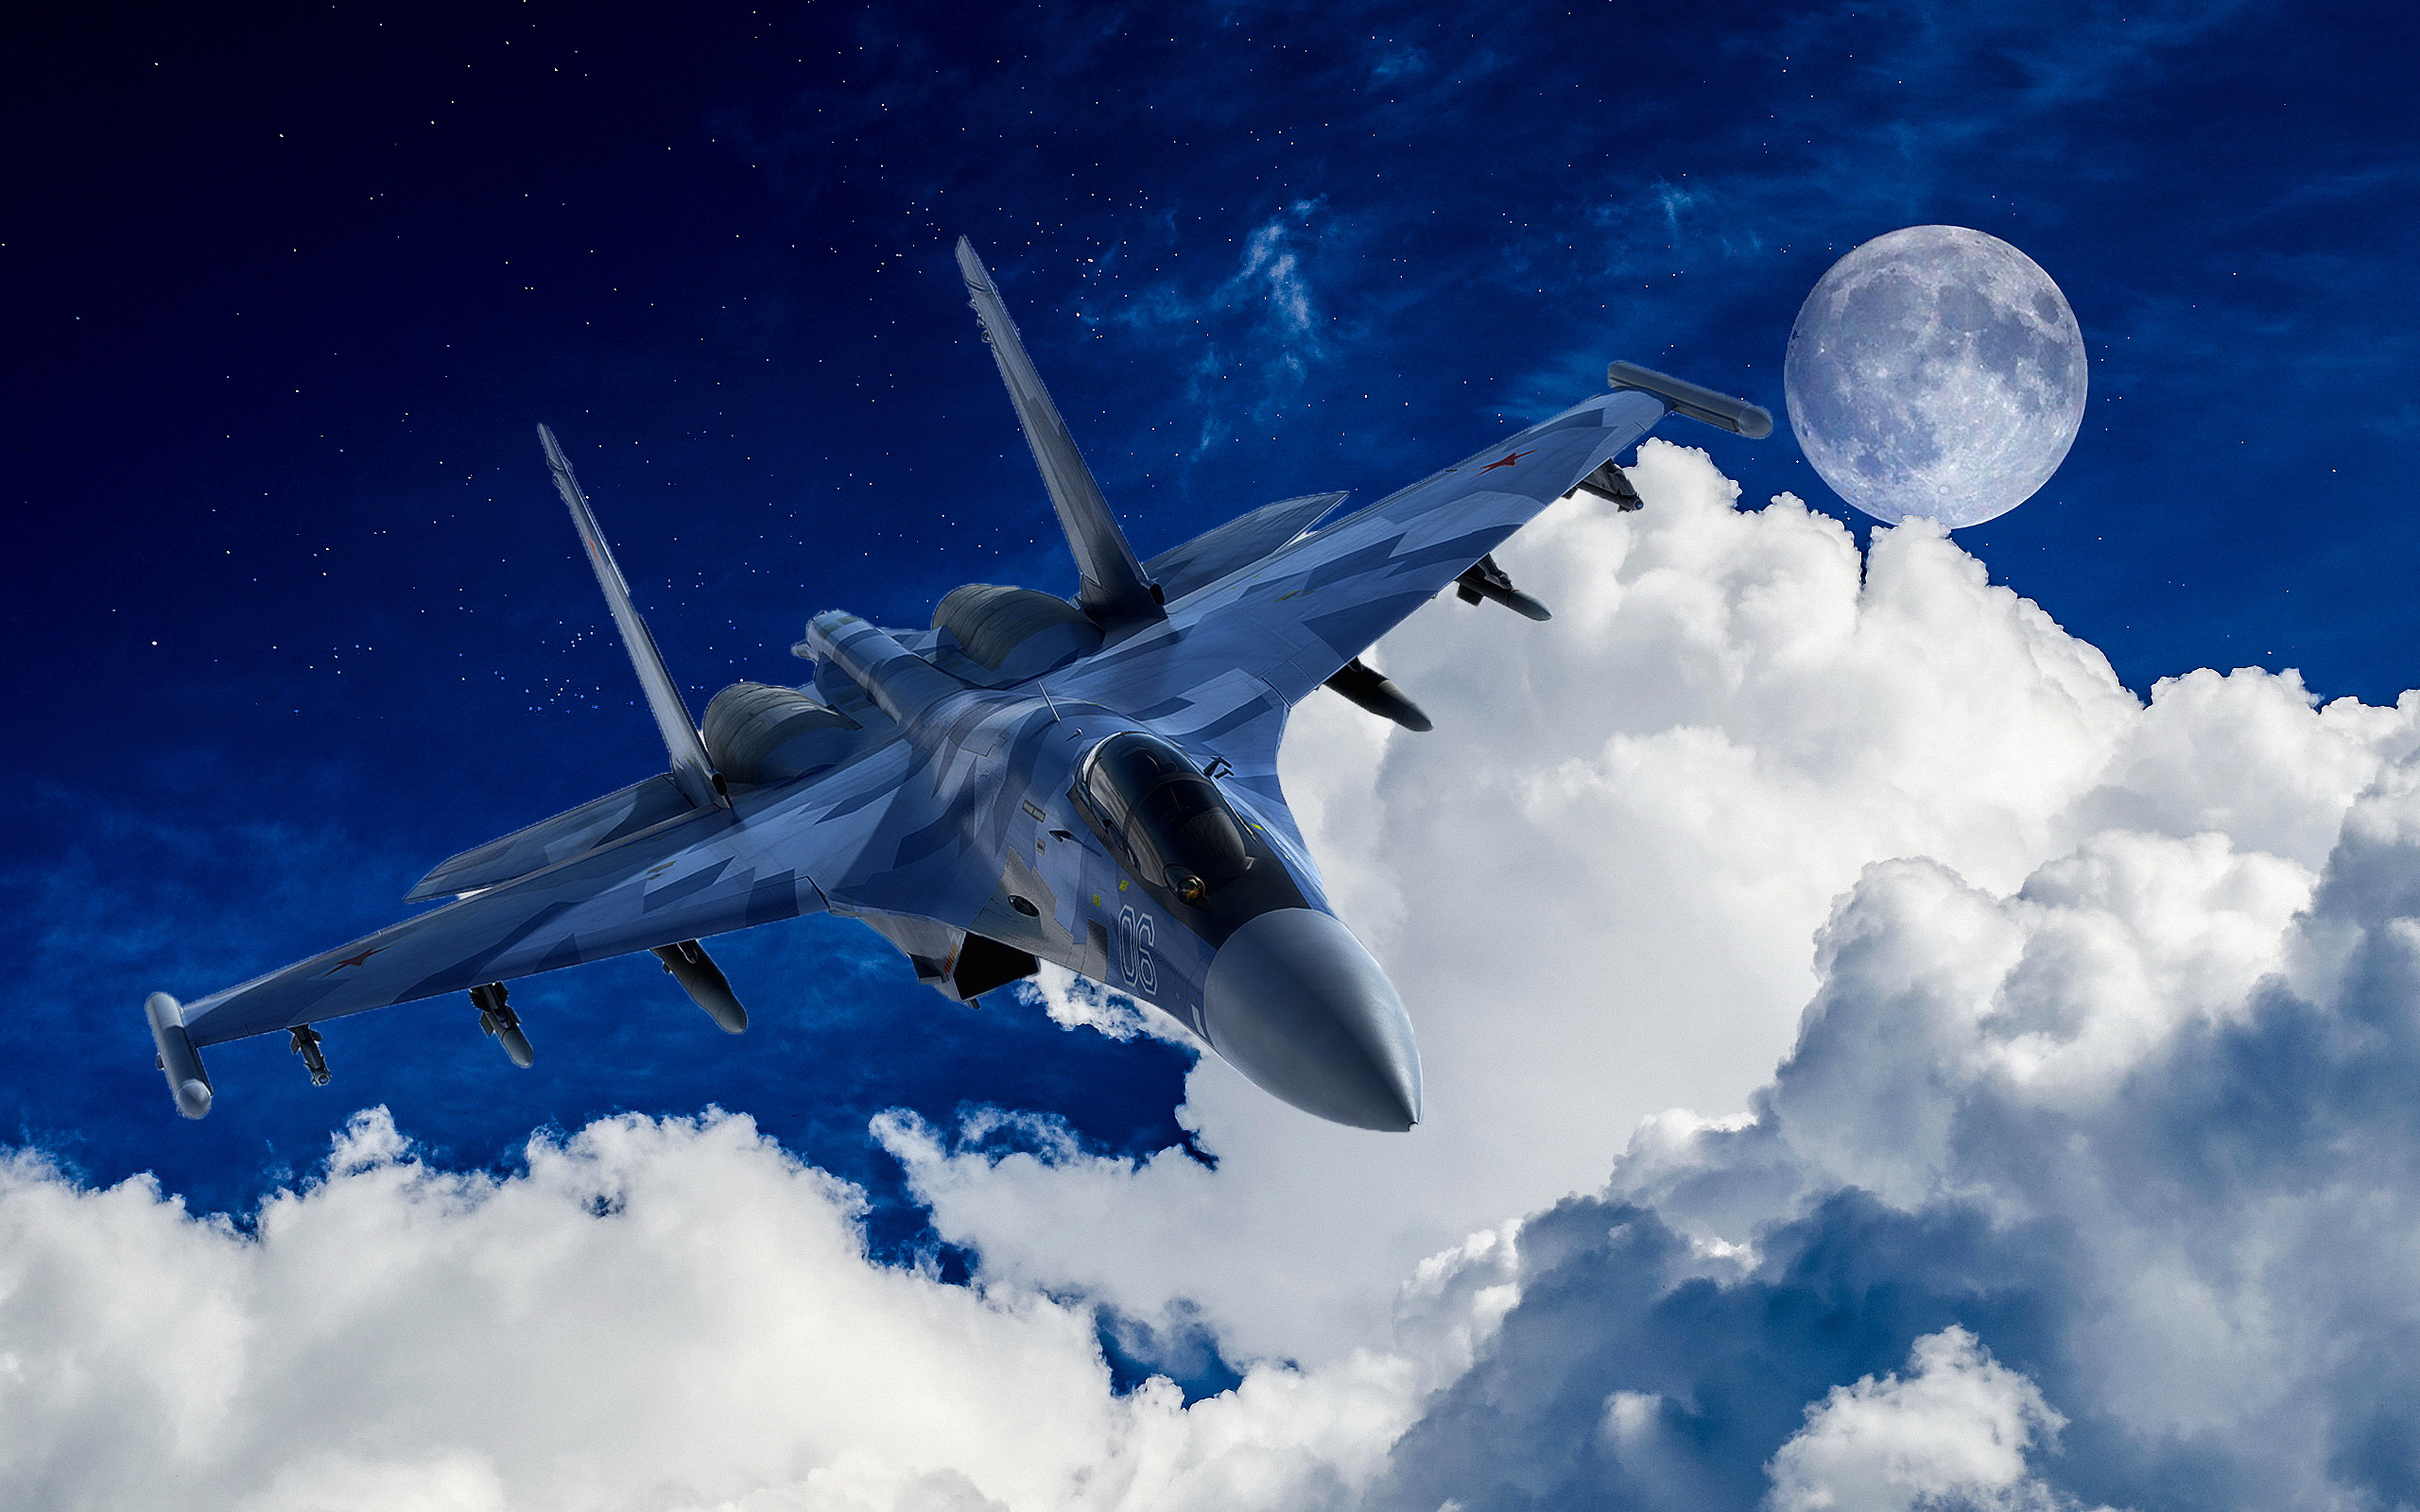 37 Sukhoi Su 35 HD Wallpapers Background Images 2560x1600